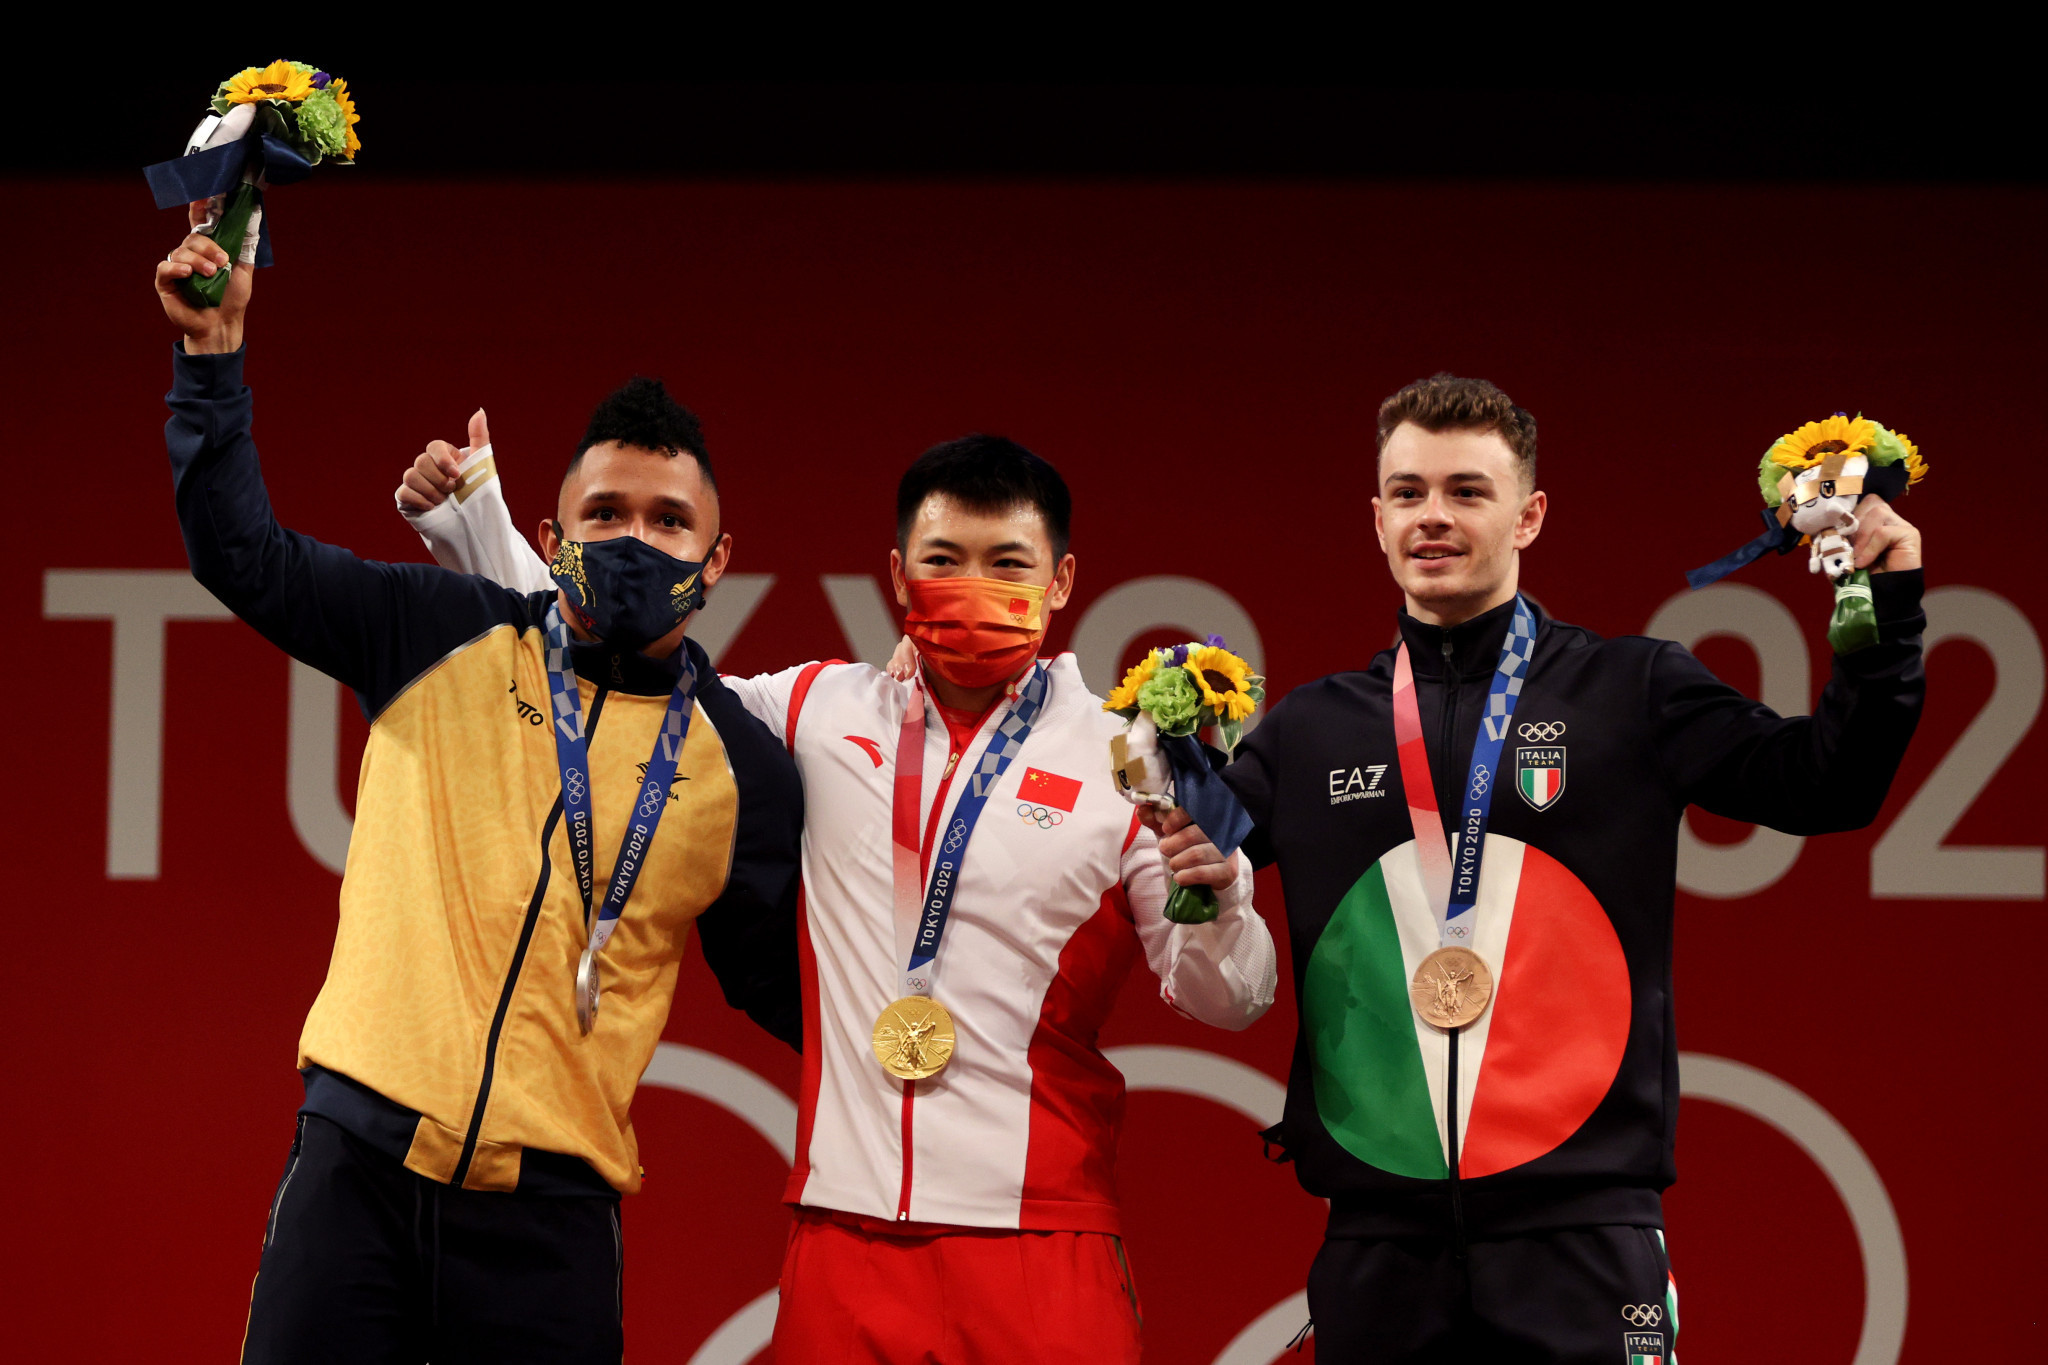 China denies Colombia in sensational weightlifting session - and Italy claims bronze